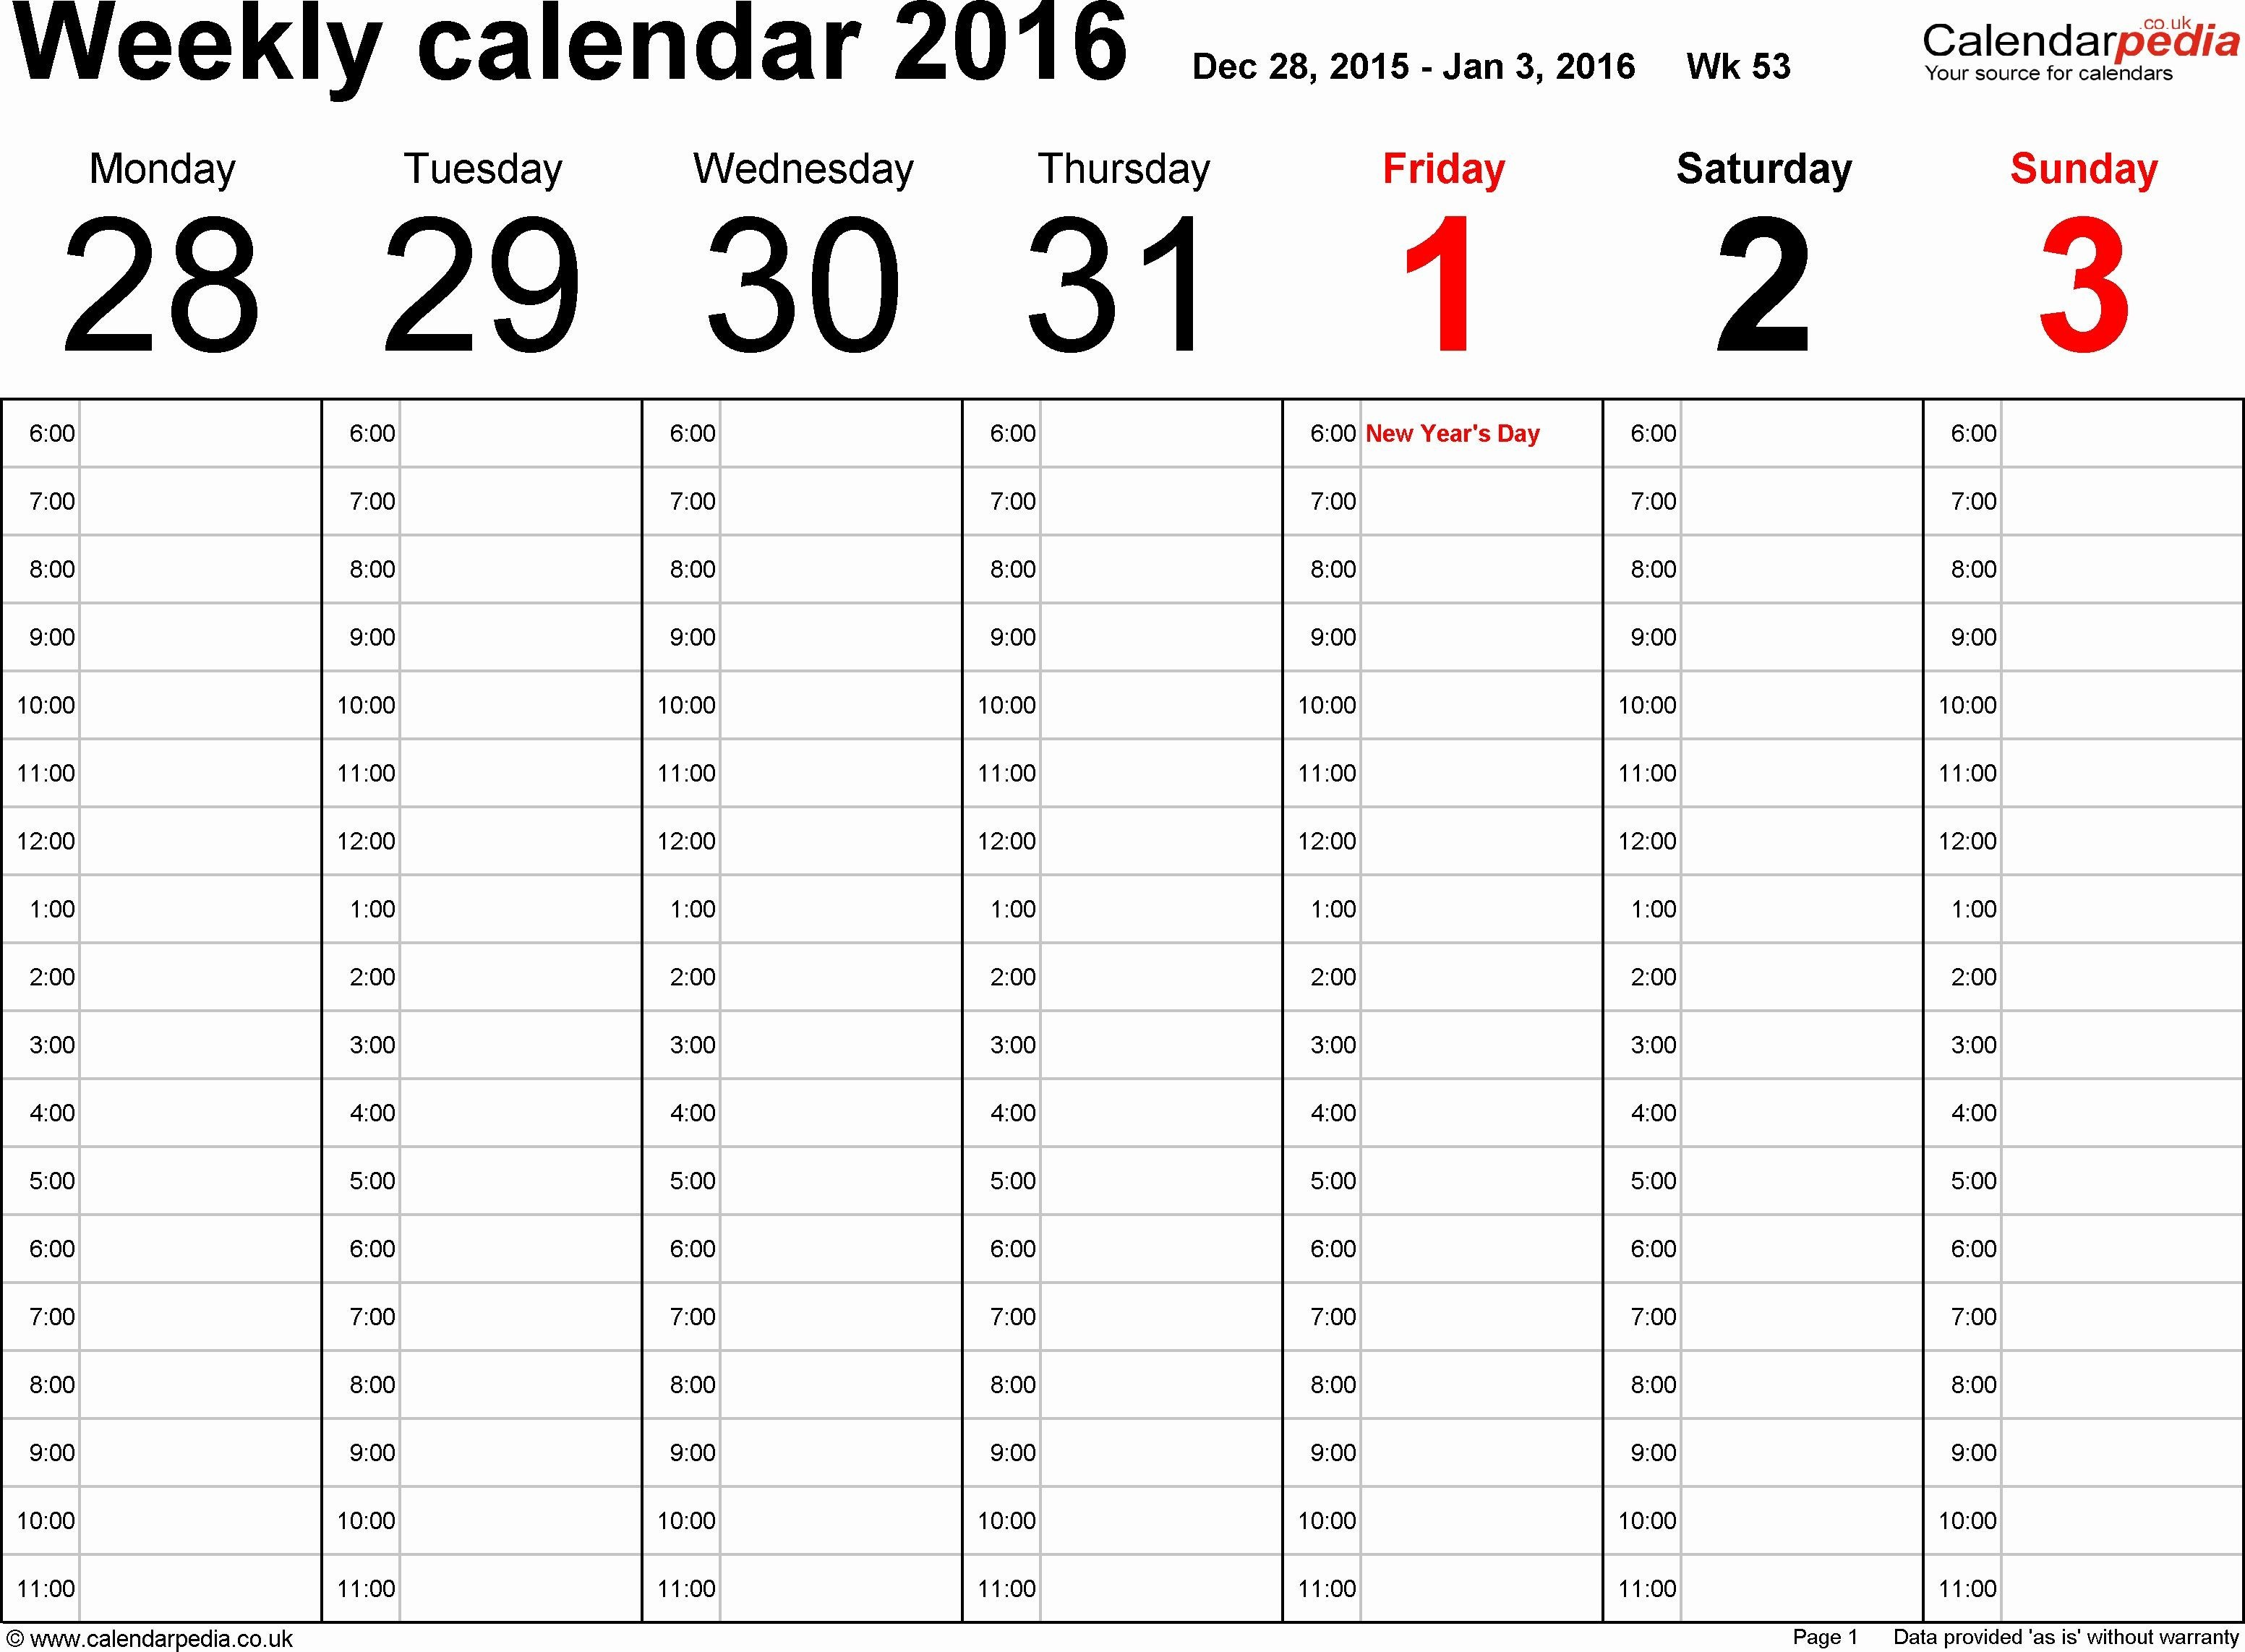 March 2018 Calendar Kalnirnay Más Recientes Pin by 4khd On August 2018 Calendar Printable Of March 2018 Calendar Kalnirnay Más Arriba-a-fecha March Calendar 2015 Blank September 2016 Calendar Free to and Print